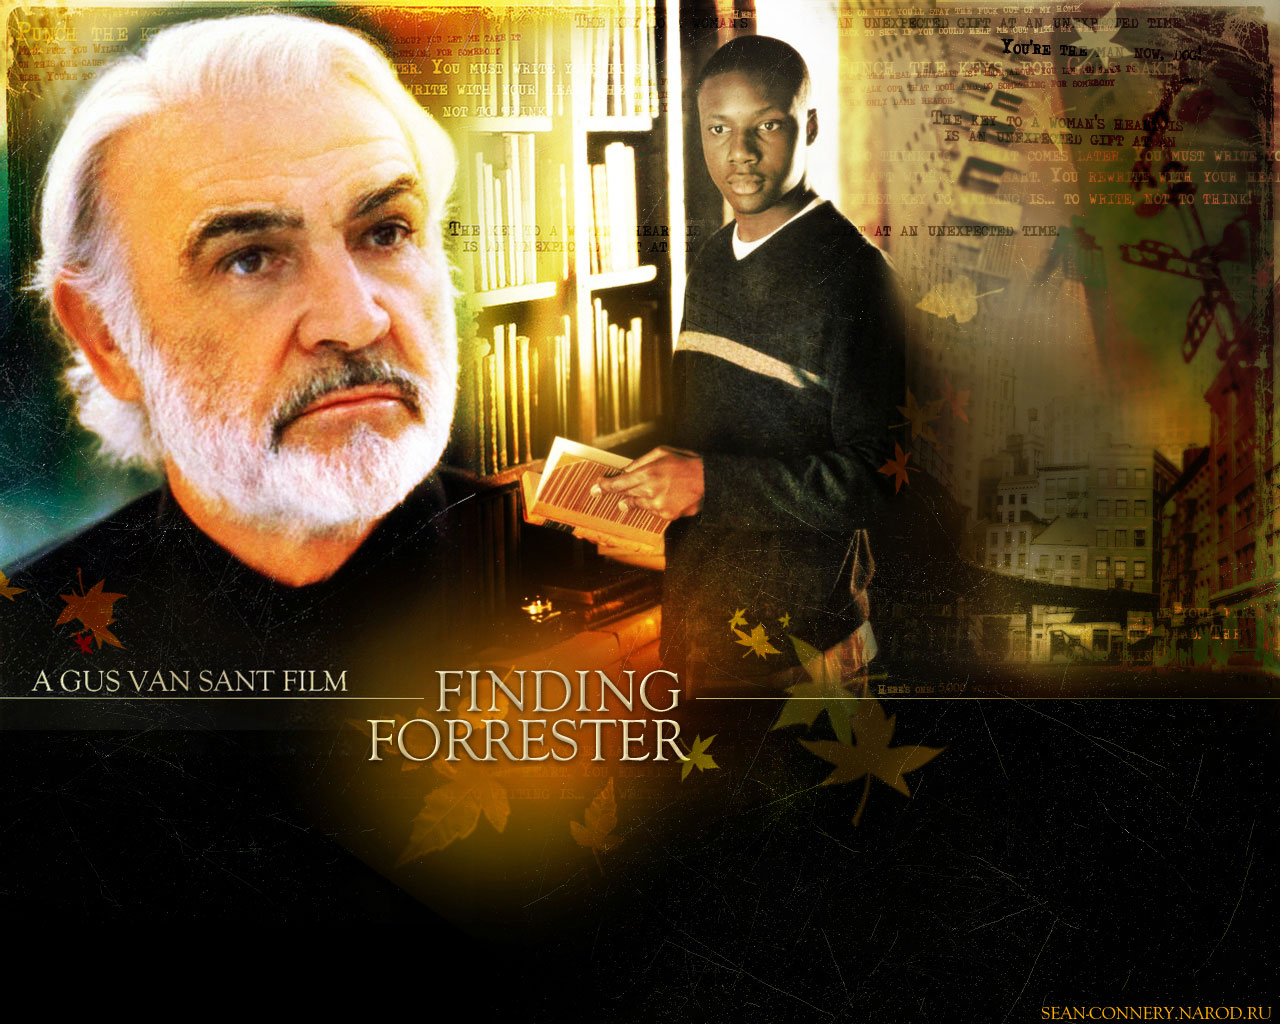 an analysis of the movie finding forester Finding forrester has 284 ratings and movie, finding forester so much that i hoped to enjoy the story from another perspective by reading the novel.